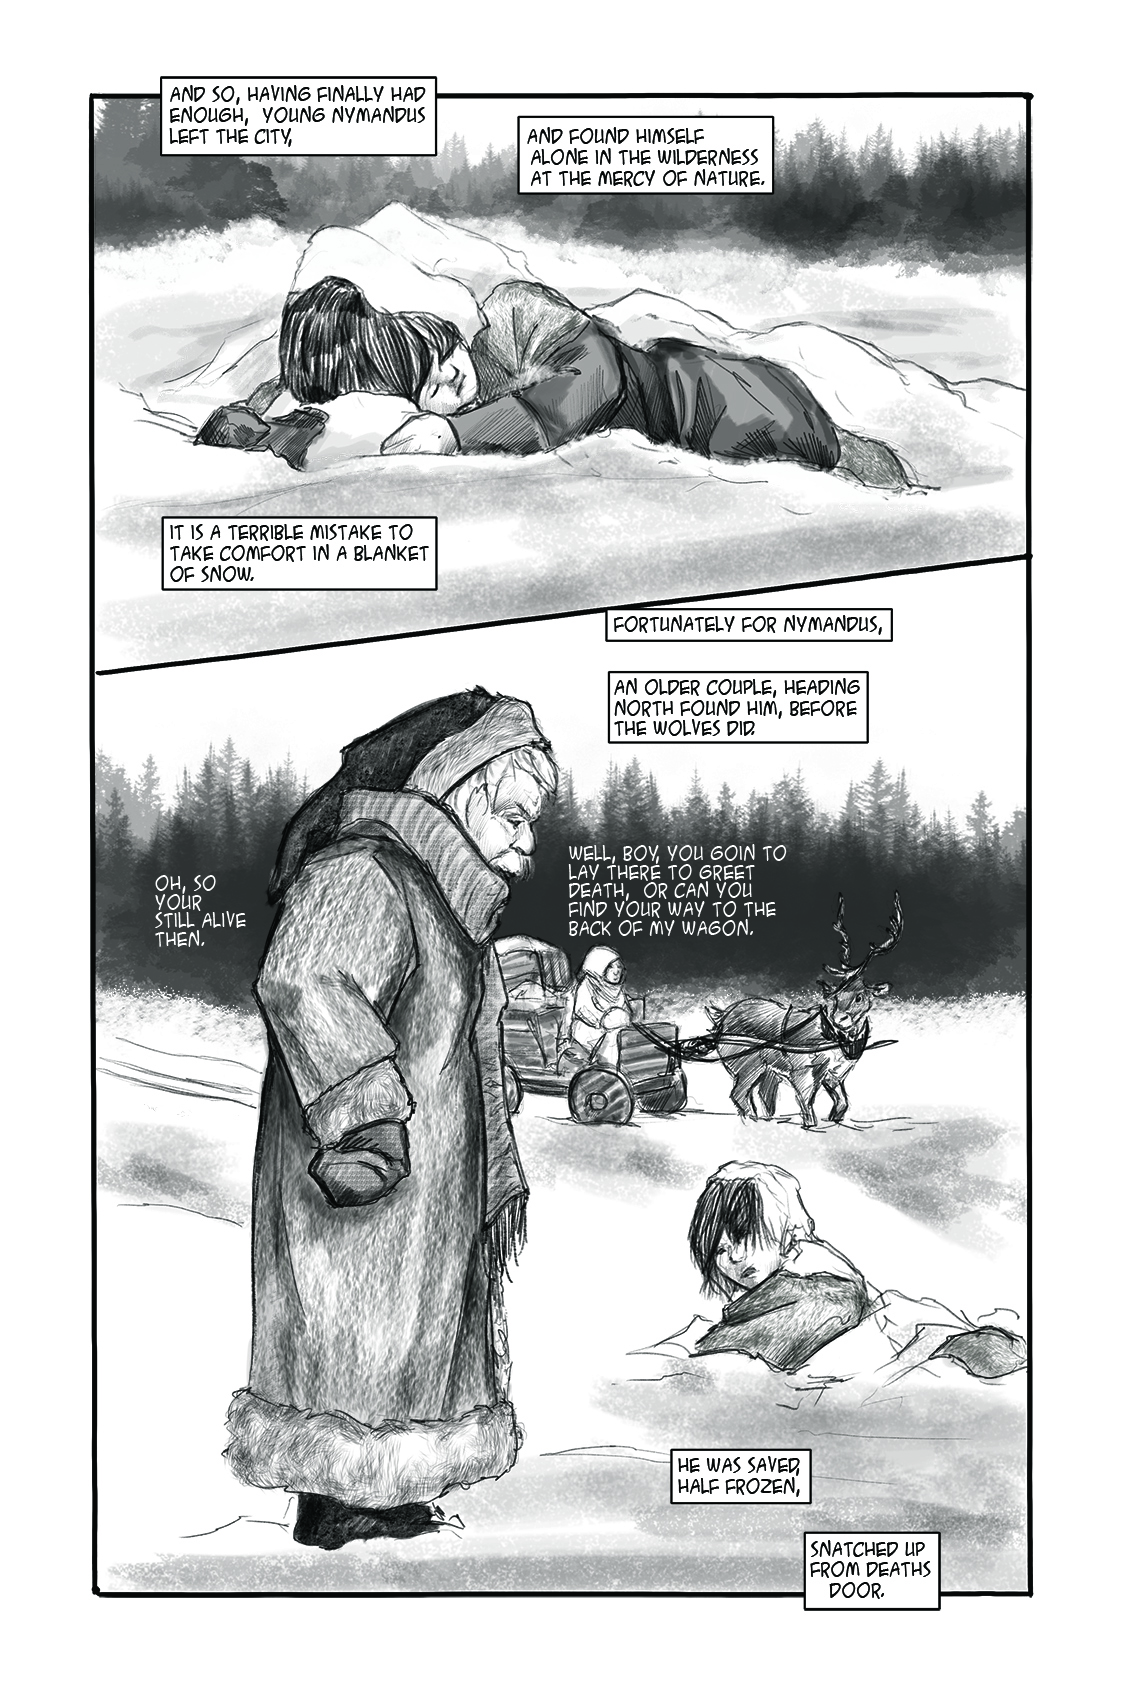 Champion's Challenge Holiday Annual Pg 4